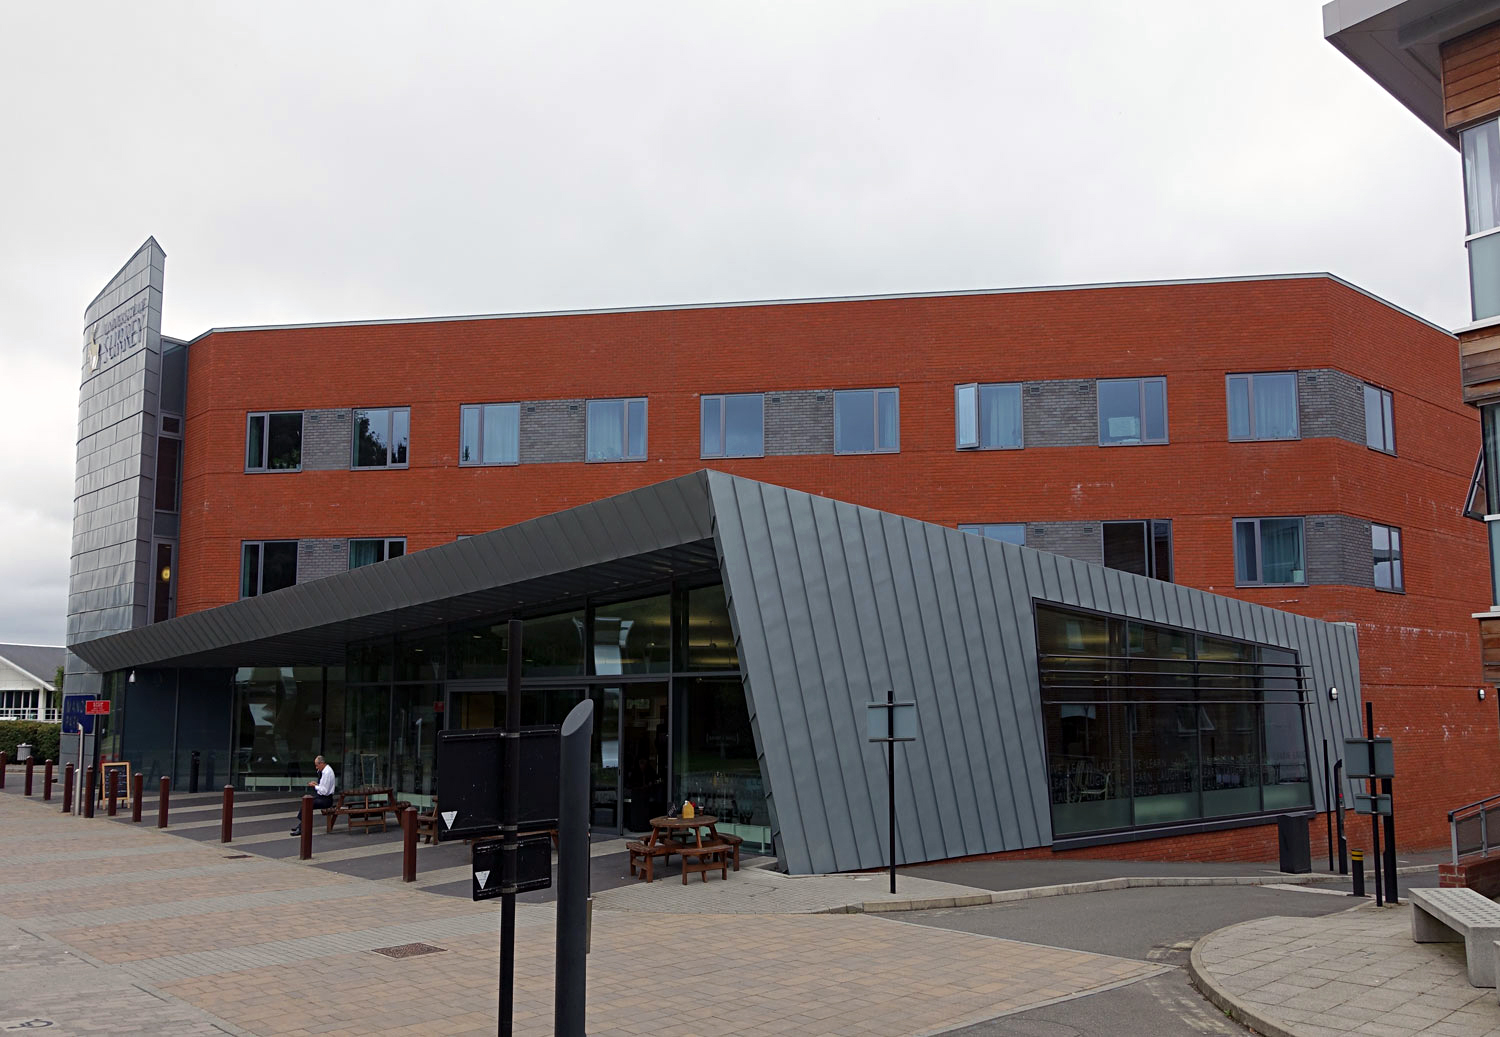 University of Surrey Reception Building